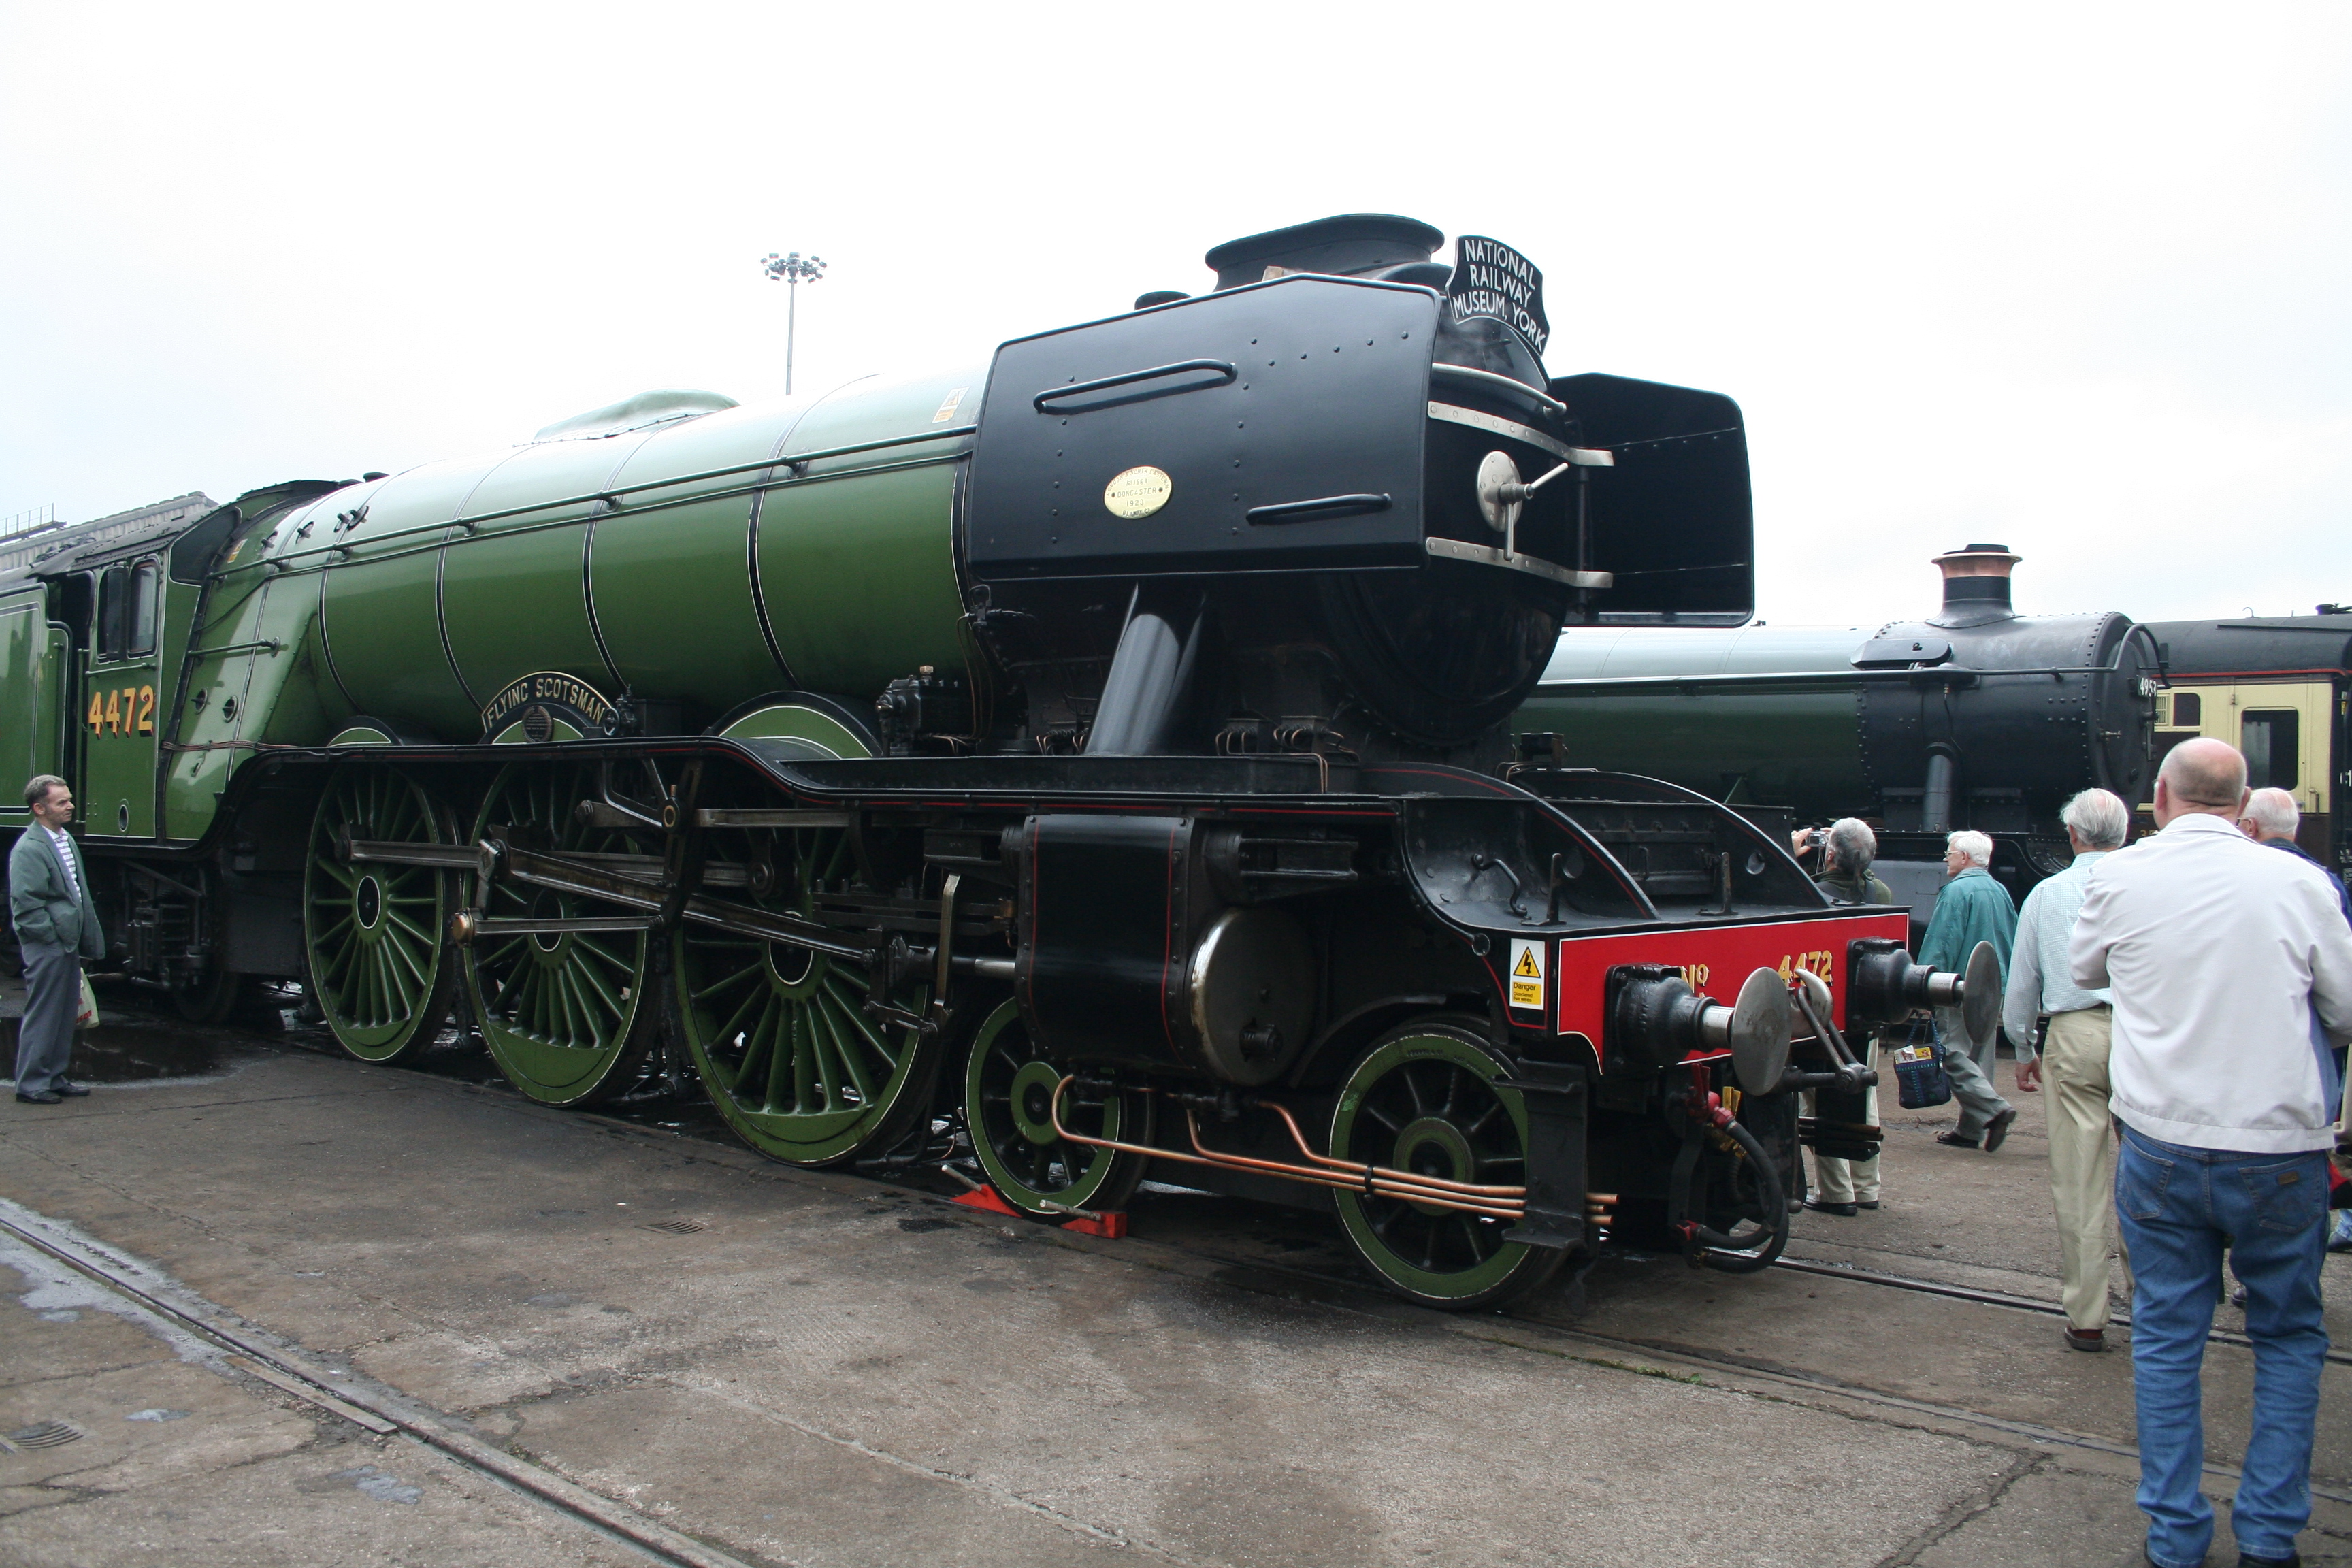 4474 Flying Scotsman seen at Crewe Works open day